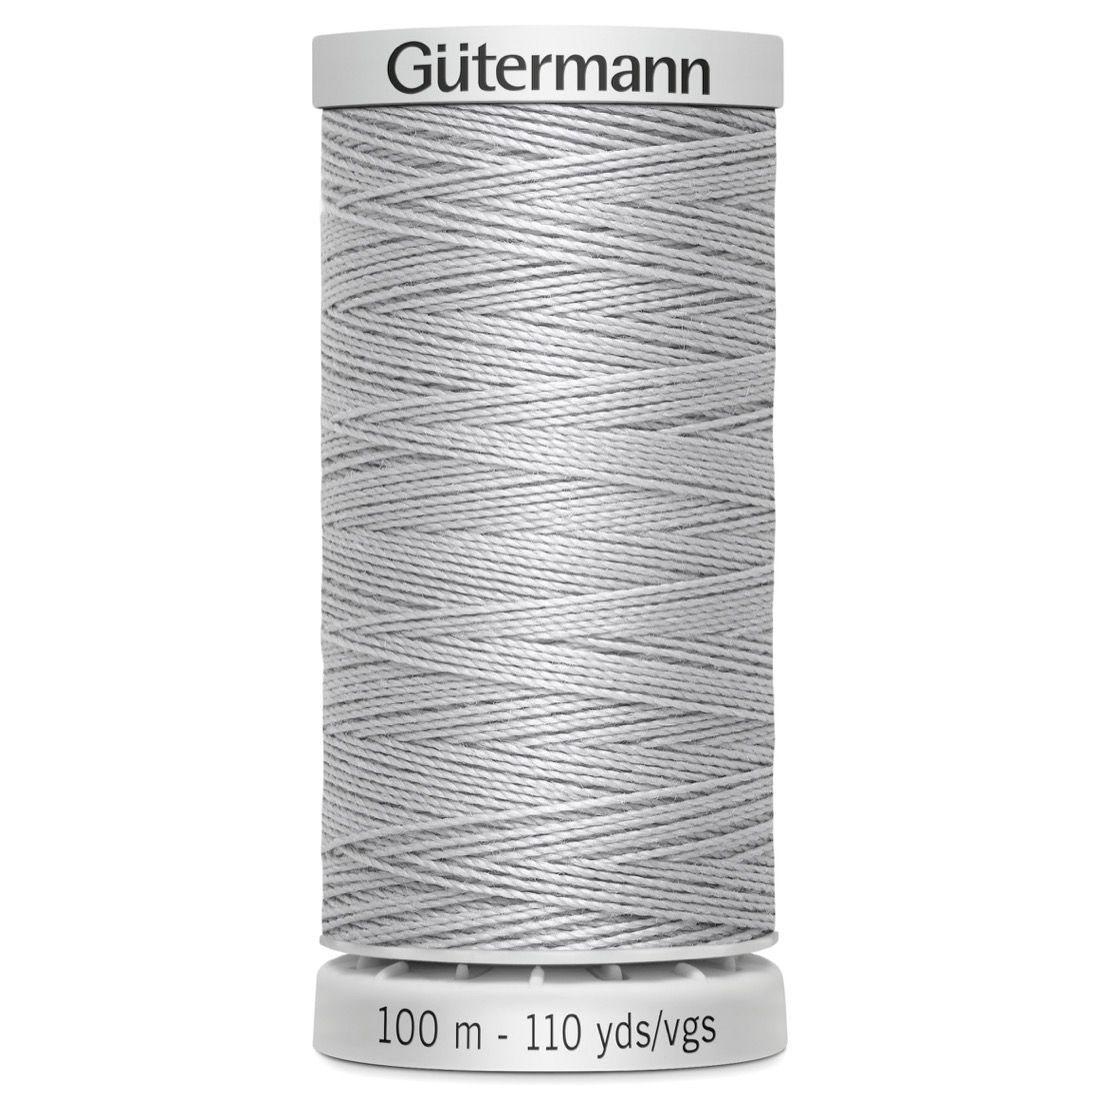 Gutermann Extra Strong Upholstery Thread - 100m - 38